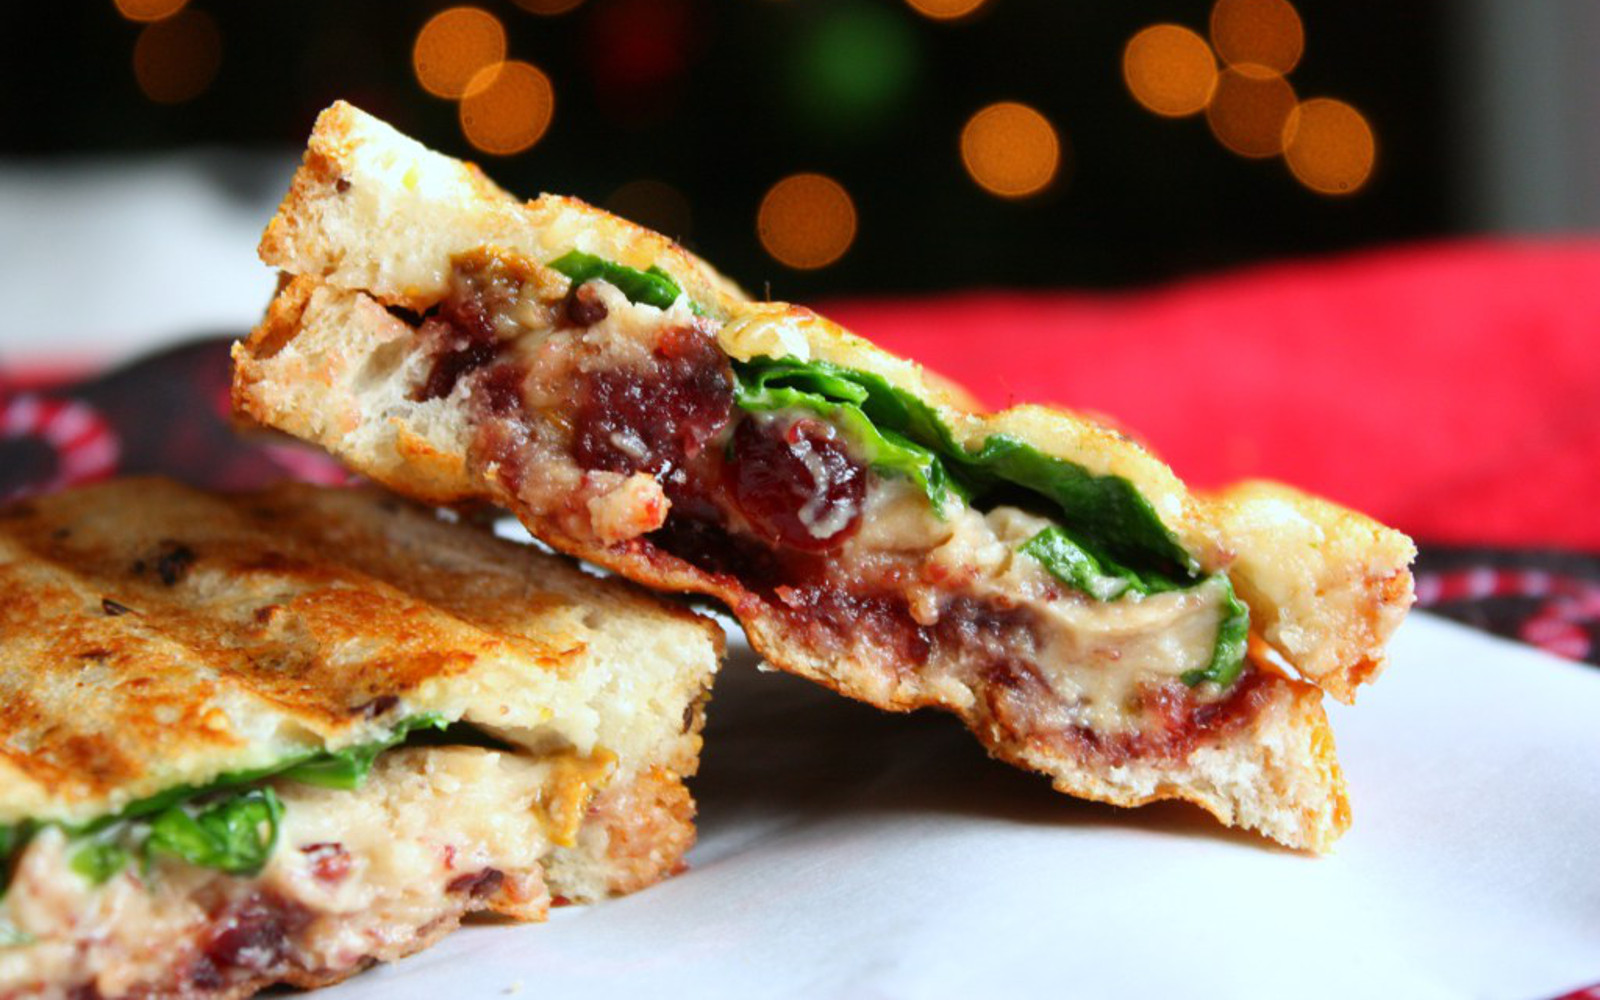 Vegan Coconut Pistachio Cashew Cheese Panini With Cranberry Jam